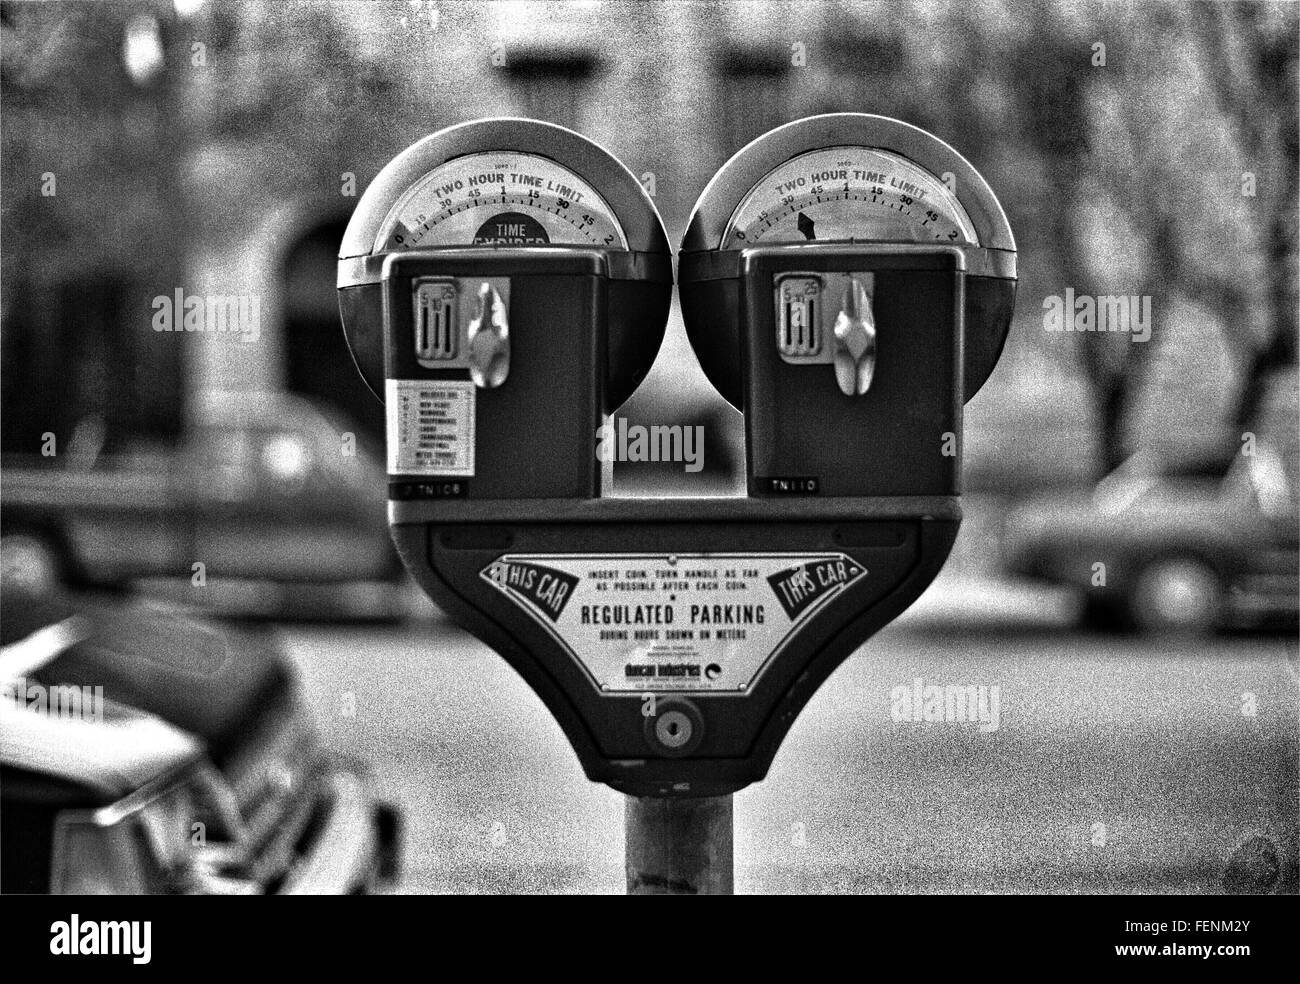 View Of Parking Meter - Stock Image